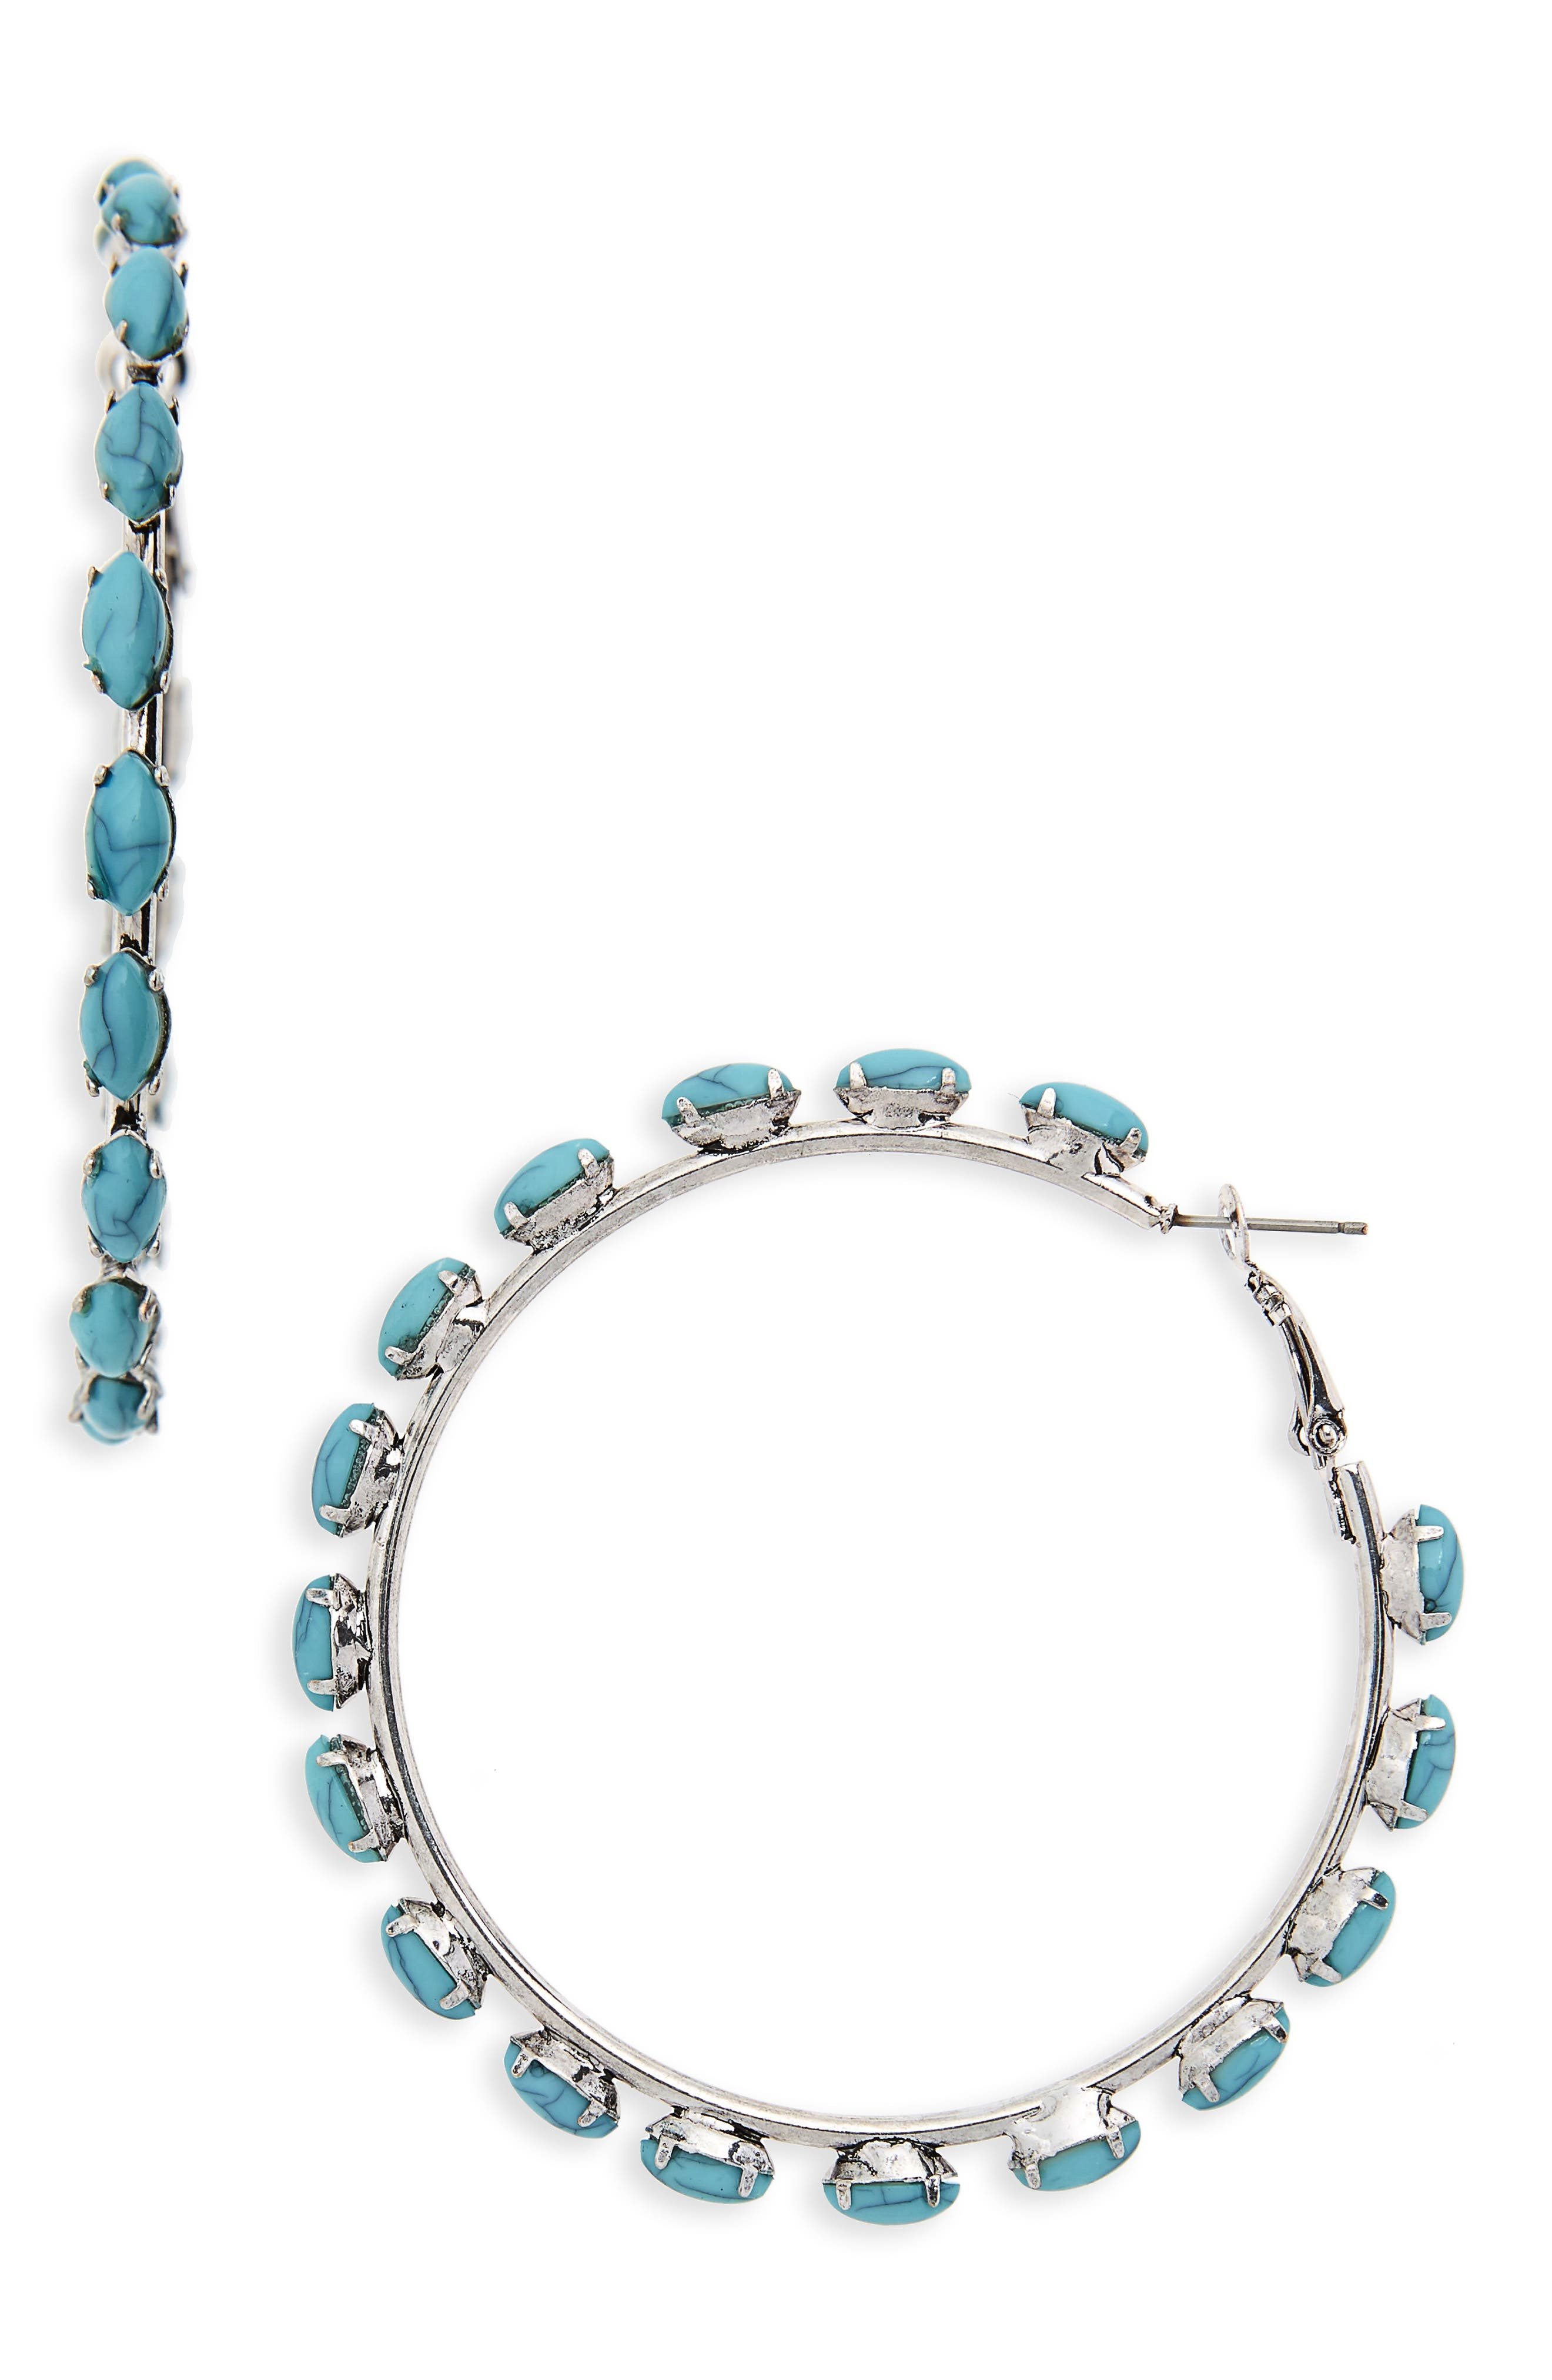 Bead Edge Hoop Earrings,                             Main thumbnail 1, color,                             Silver/ Turquoise